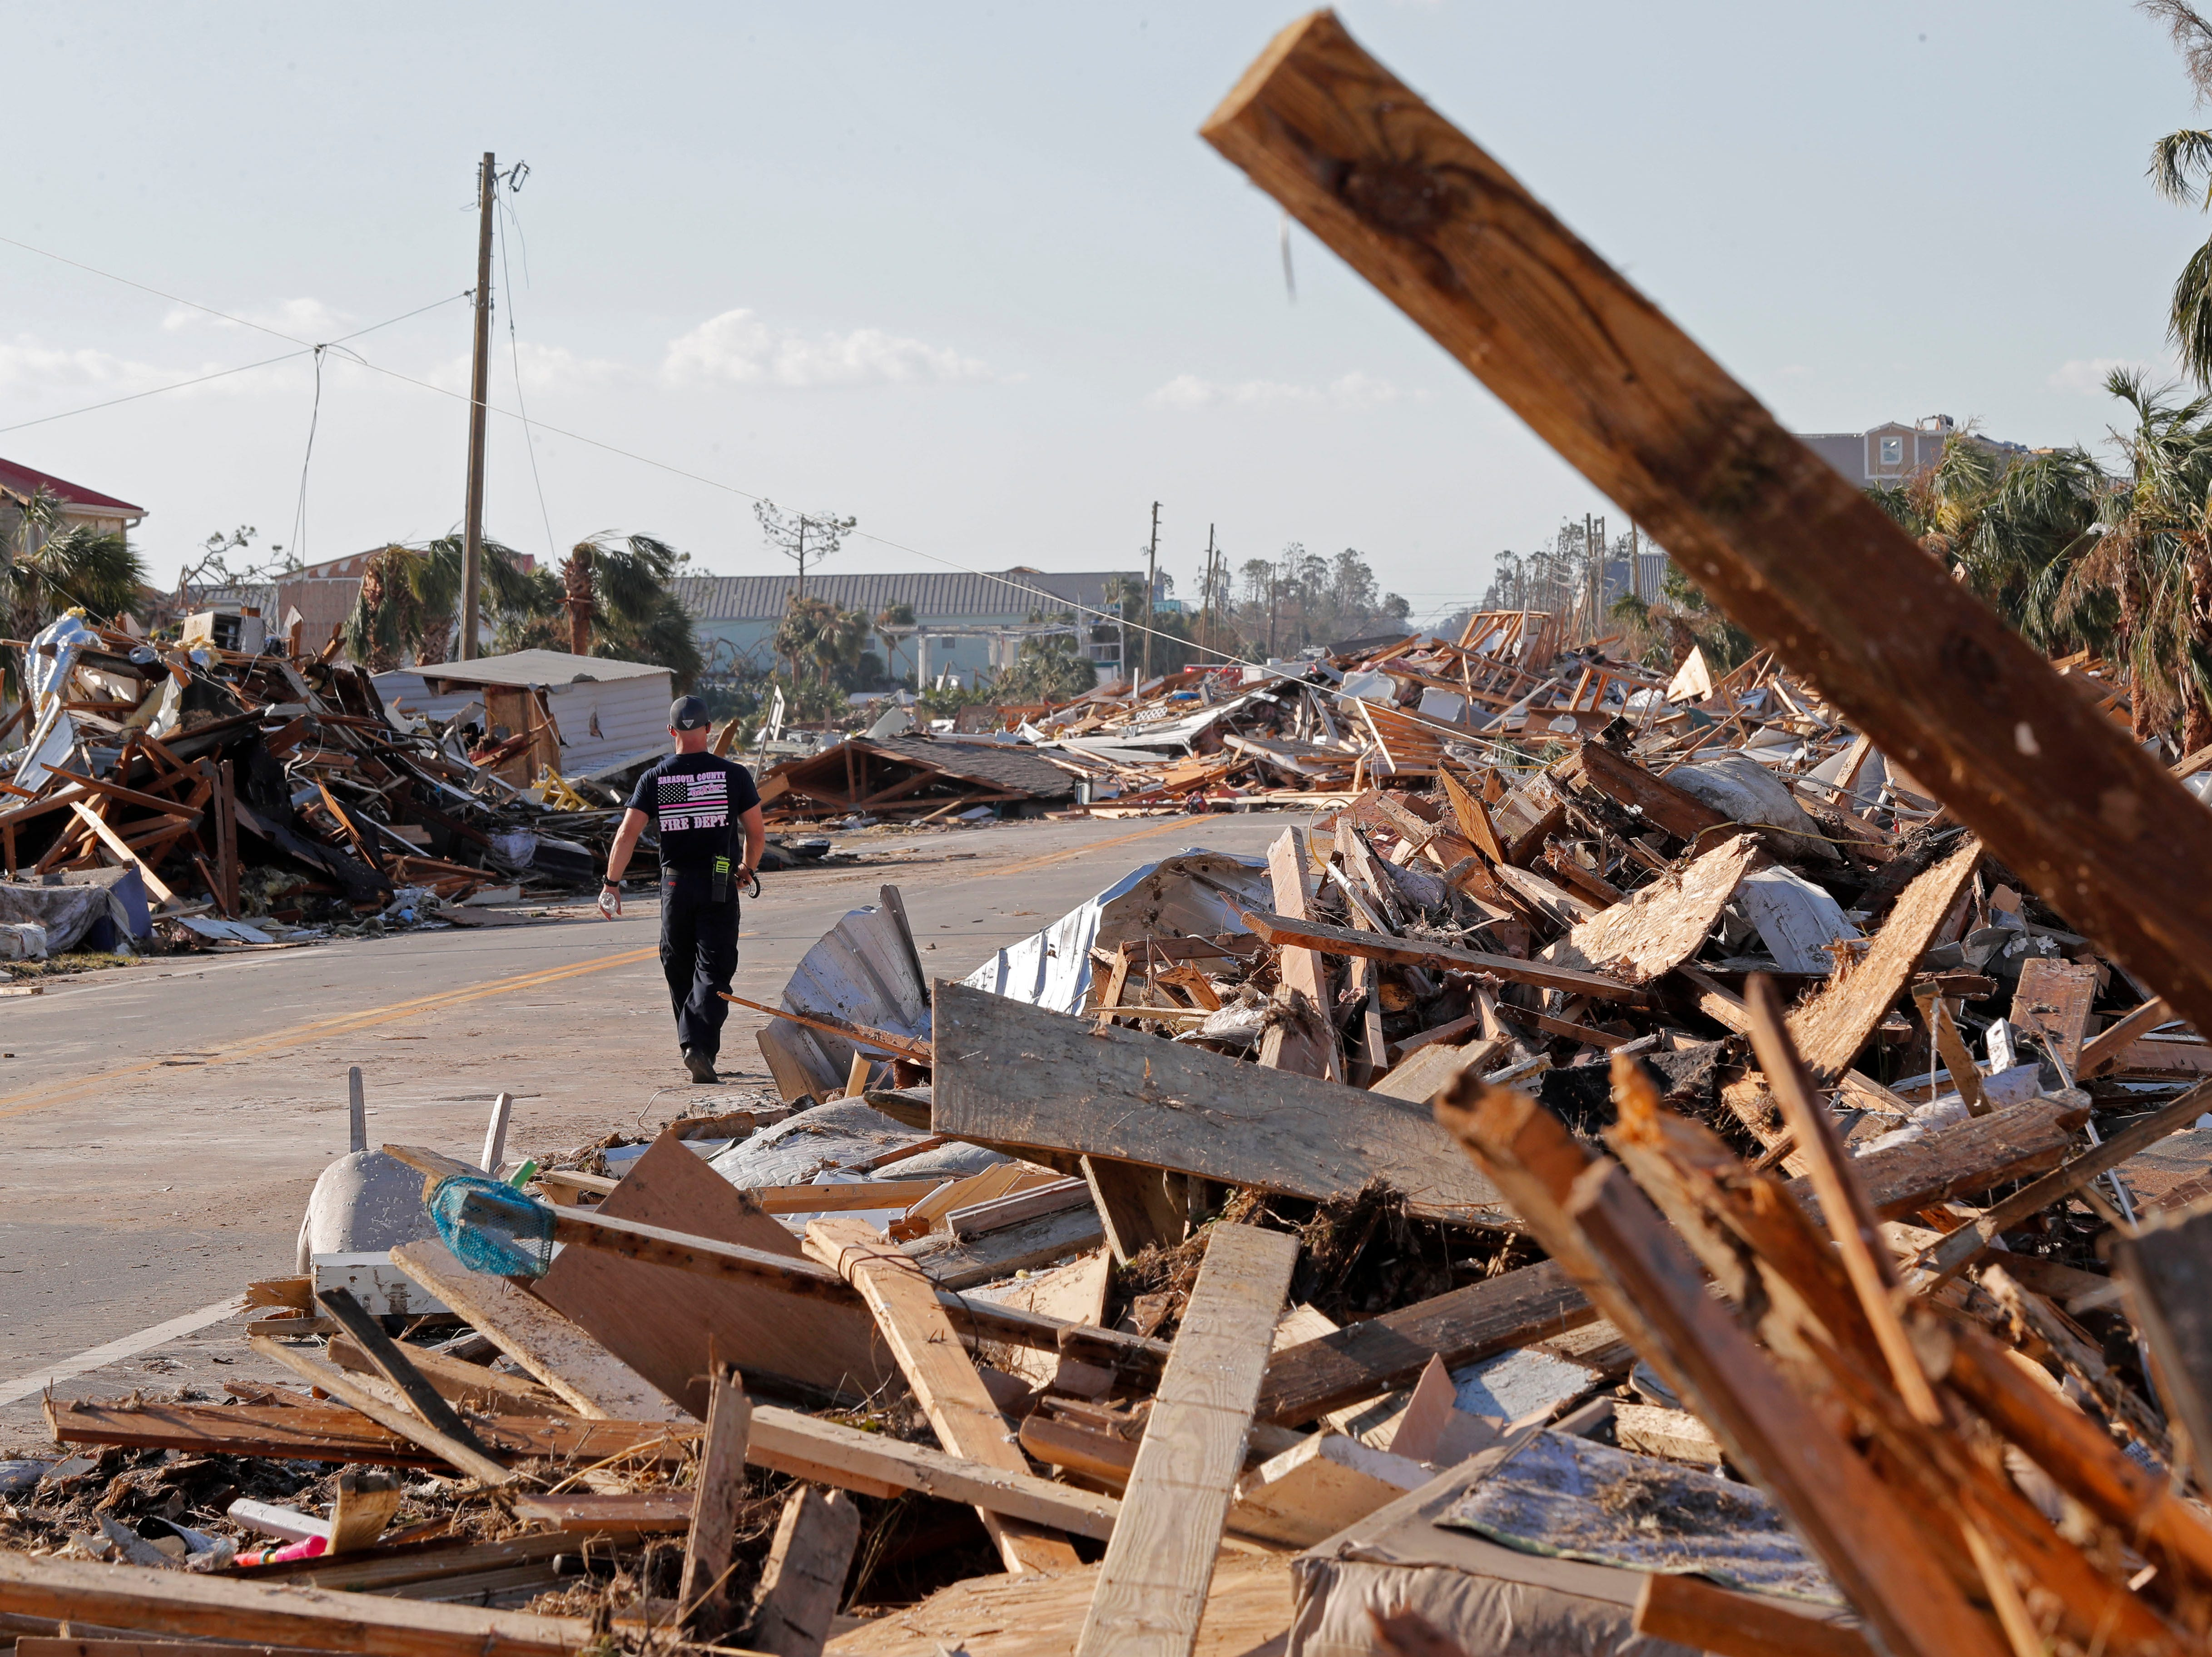 Logan Brisson of the Sarasota County Fire Dept. strike team, walks past debris in the aftermath of Hurricane Michael in Mexico Beach, Fla., Thursday, Oct. 11, 2018. The devastation inflicted by Hurricane Michael came into focus Thursday with rows upon rows of homes found smashed to pieces, and rescue crews began making their way into the stricken areas in hopes of accounting for hundreds of people who may have stayed behind. (AP Photo/Gerald Herbert)